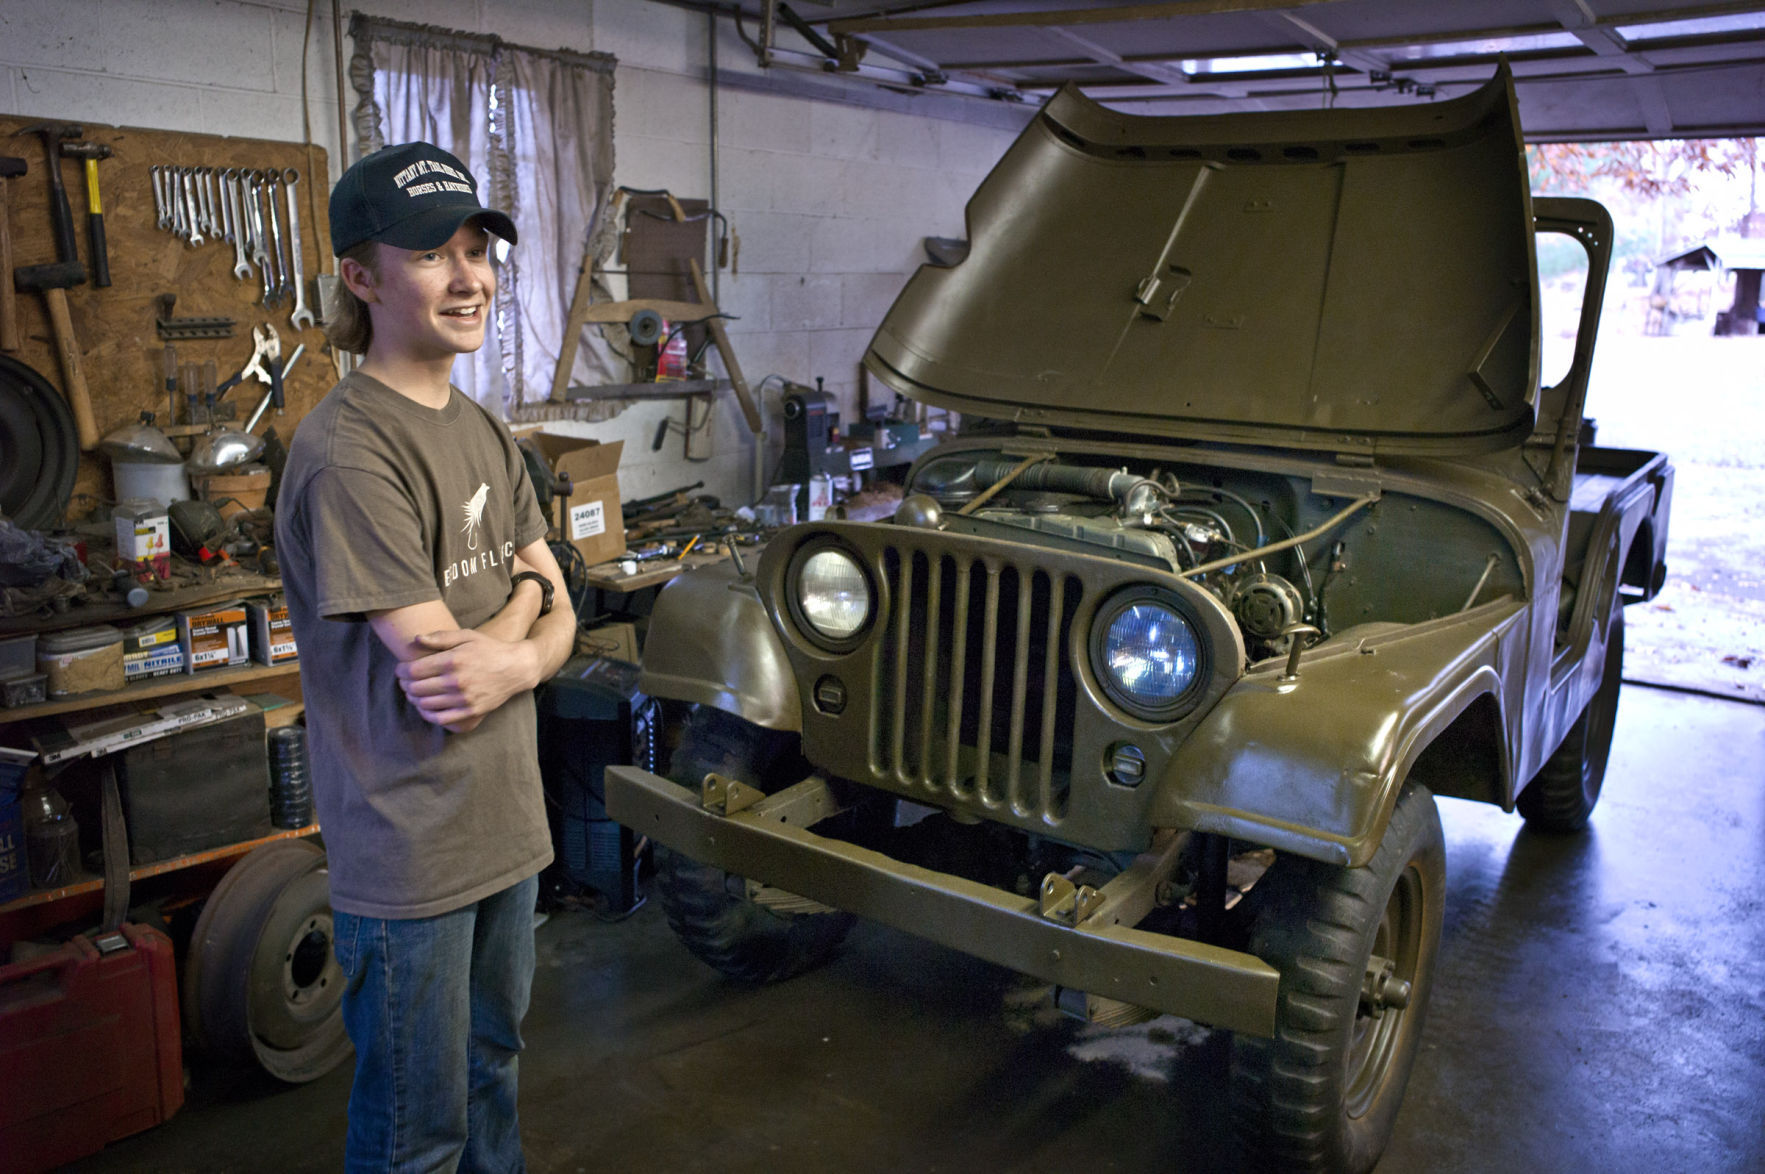 ben zenger 15 has been working on restoring this 1954 willys jeep since he was 11 tearing it down to the frame for a complete rebuild  [ 1200 x 798 Pixel ]